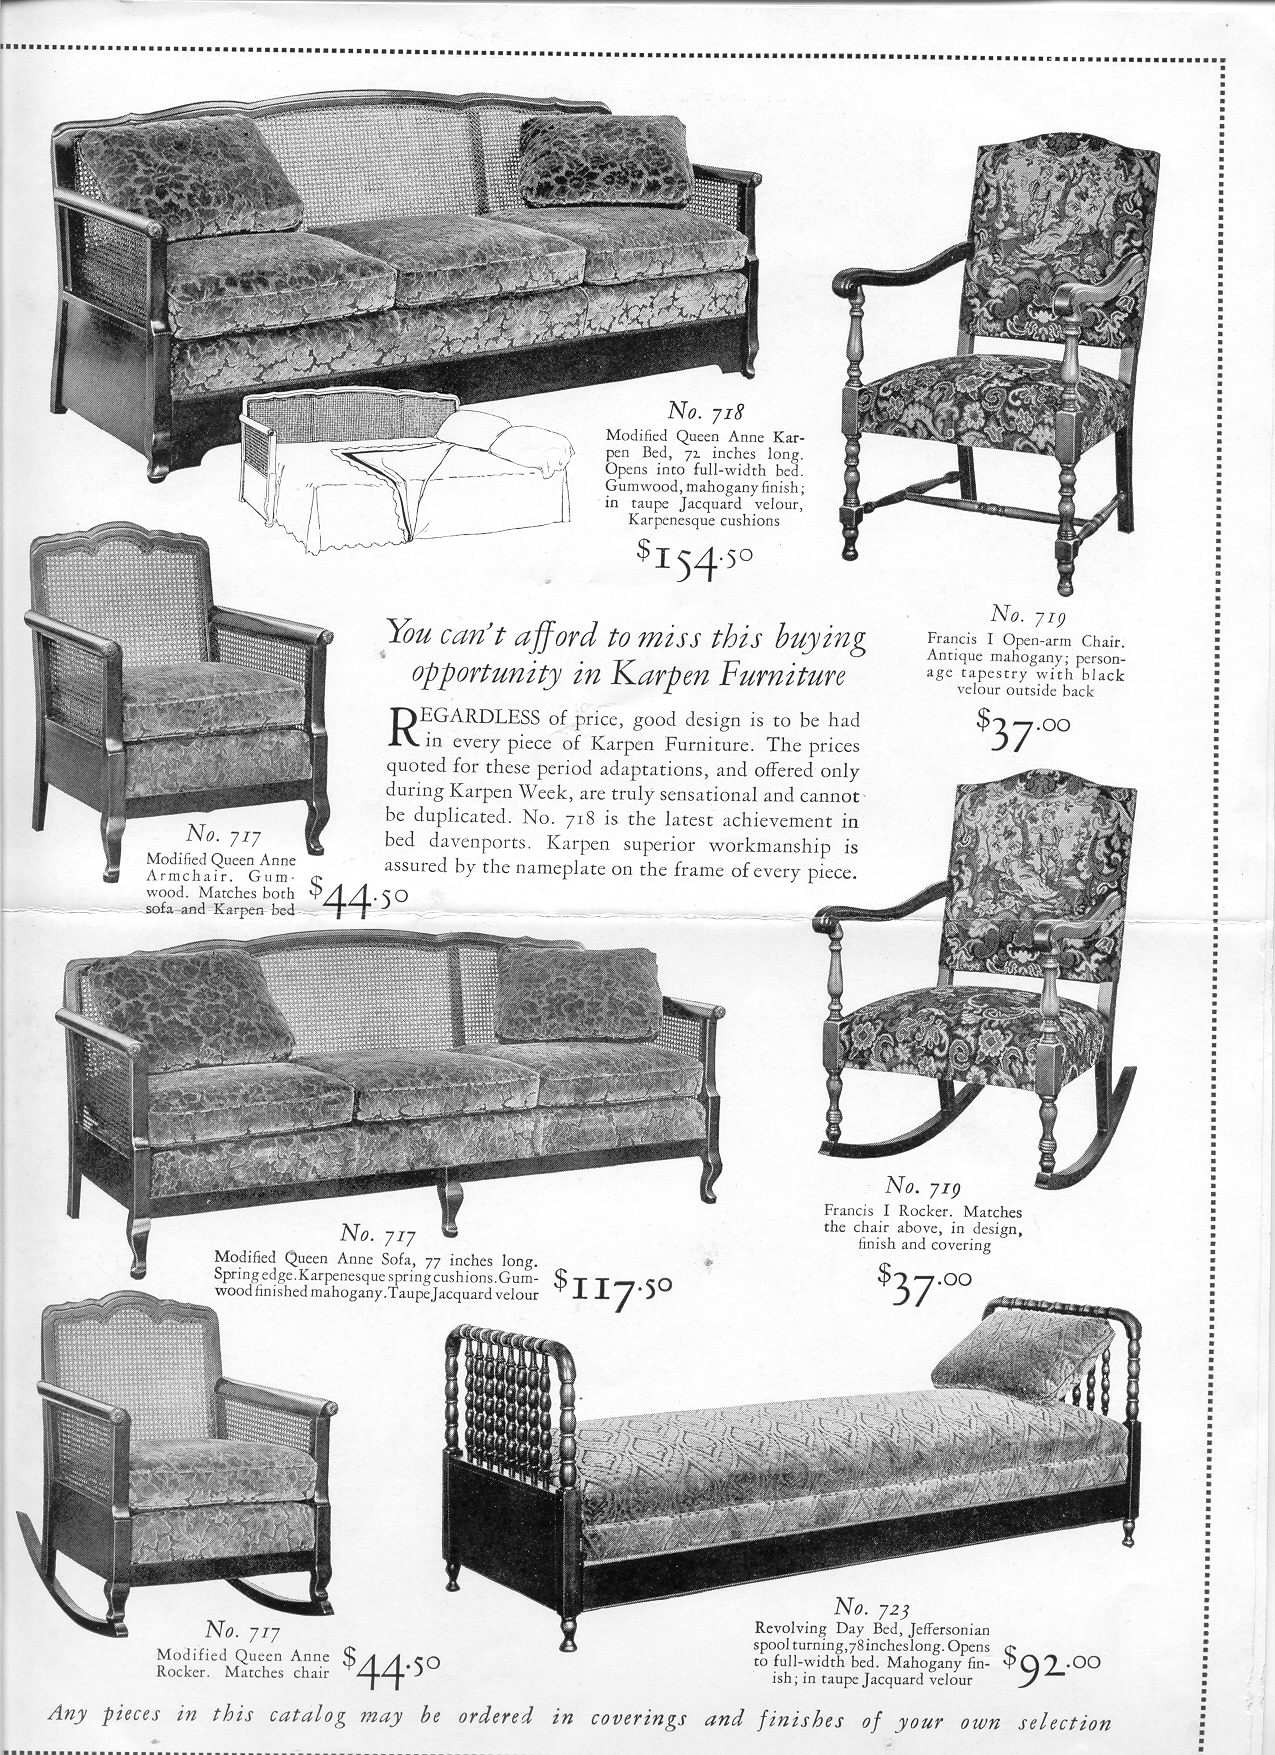 Stupendous I Have A Karpen Furniture 1925 Modified Queen Mahogany Sofa Gamerscity Chair Design For Home Gamerscityorg